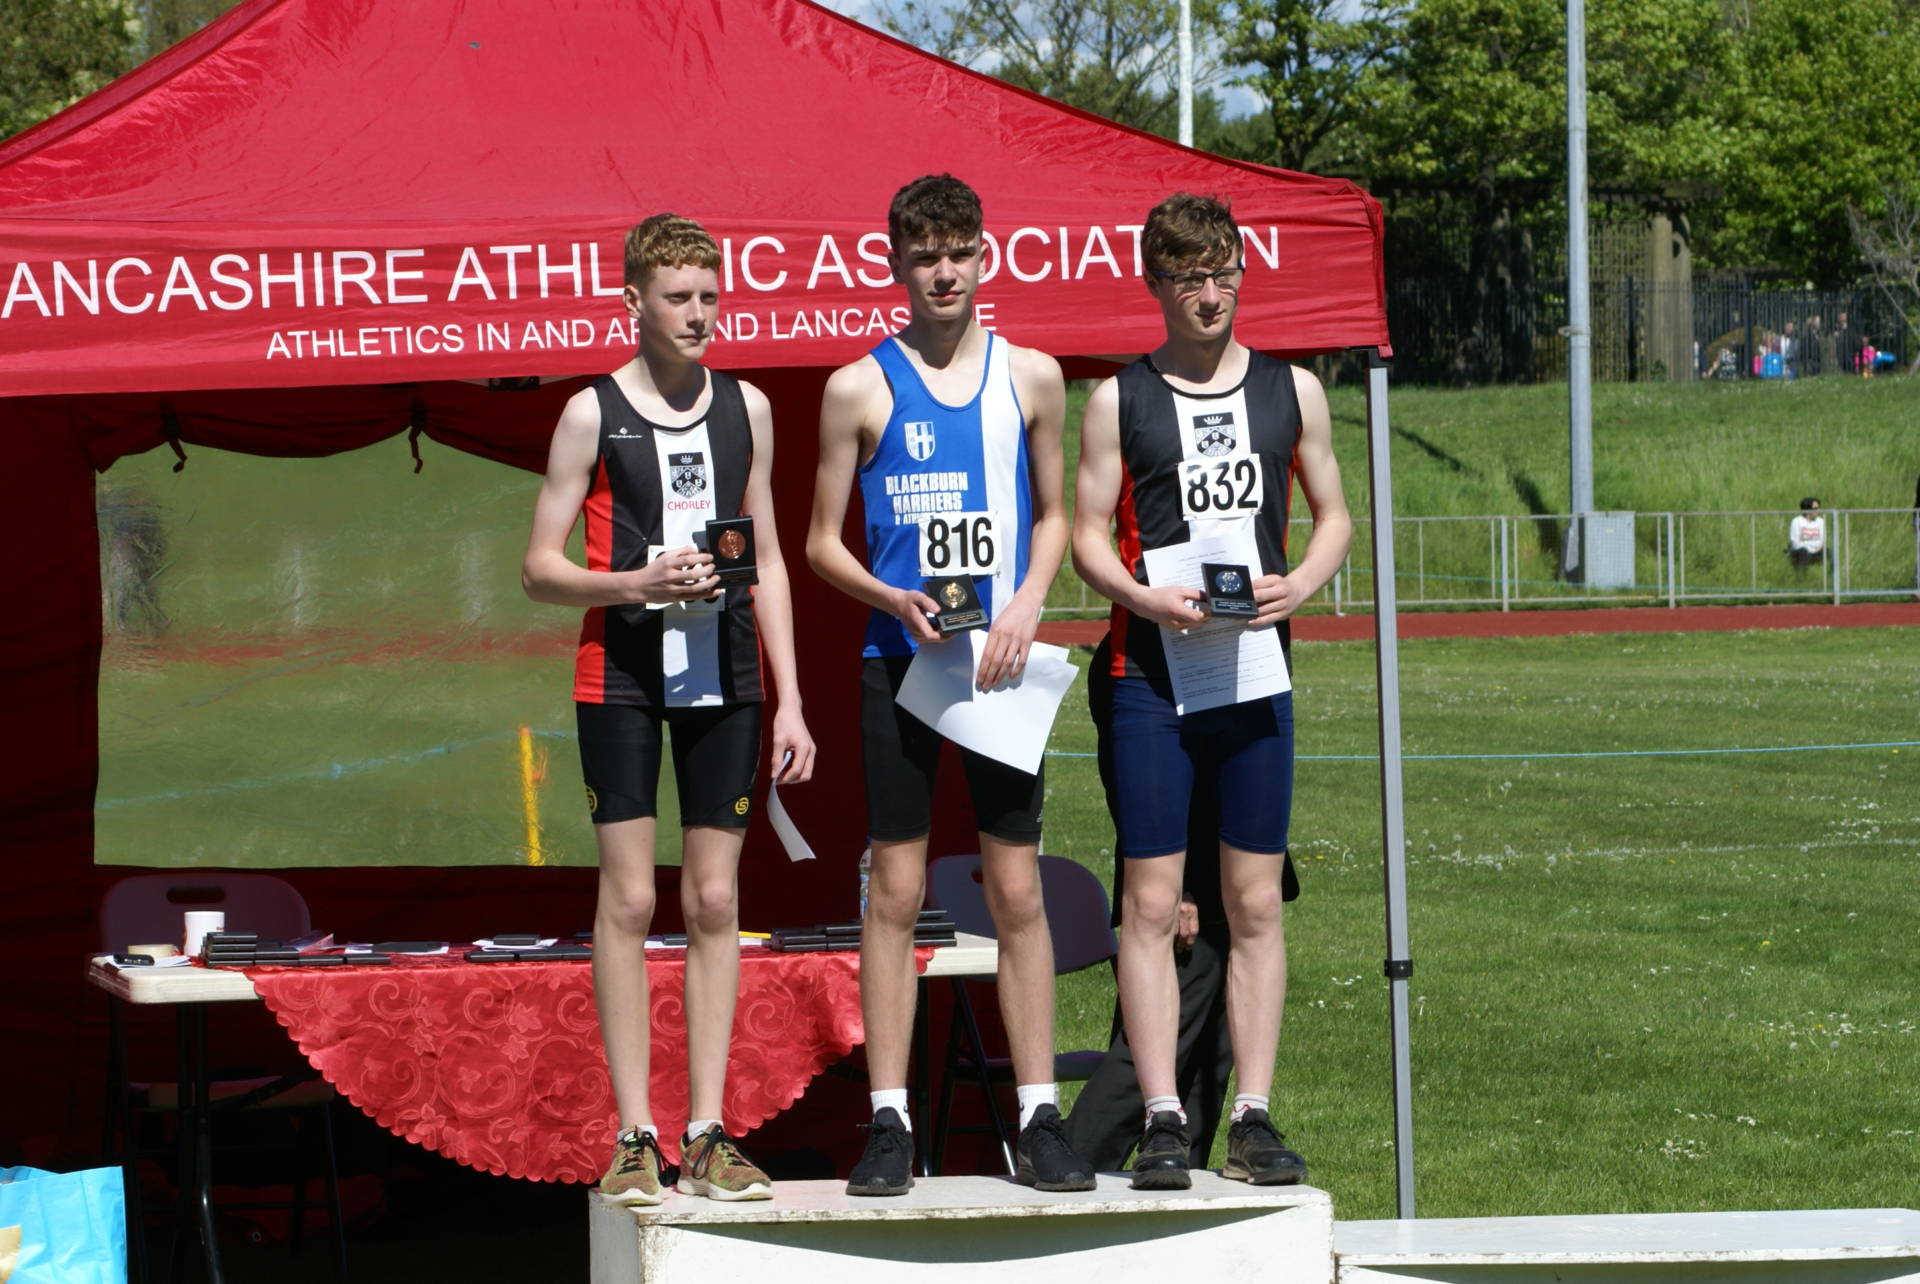 46 Medals and 43 New PB's at Lancs Champs for Harriers – BMC with Alison – Ben Wins Pinhaw – Tom represents Lancashire at Inter-Counties Fell Championships – Top 3 for Paul at Chorley 10k -John Chaplin 1st V60 at Haigh Hall – Andrew takes on Majorca Half-Ironman – Junior Aquathon/Duathlon